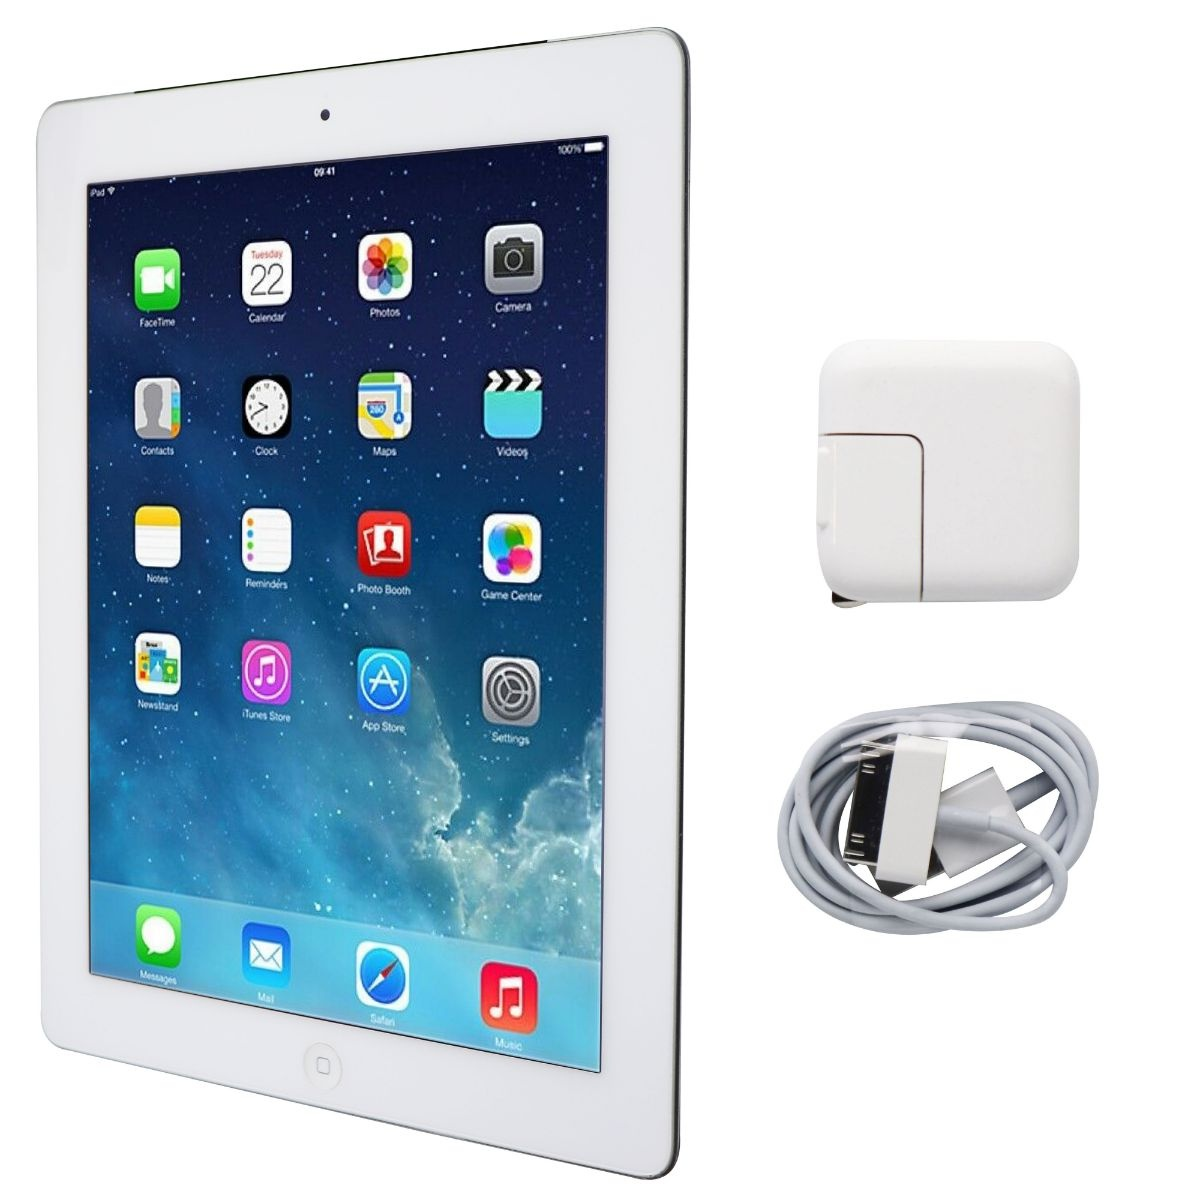 Apple iPad 9.7-inch (3rd Generation) Tablet A1430 (AT&T Locked) - 64GB / White